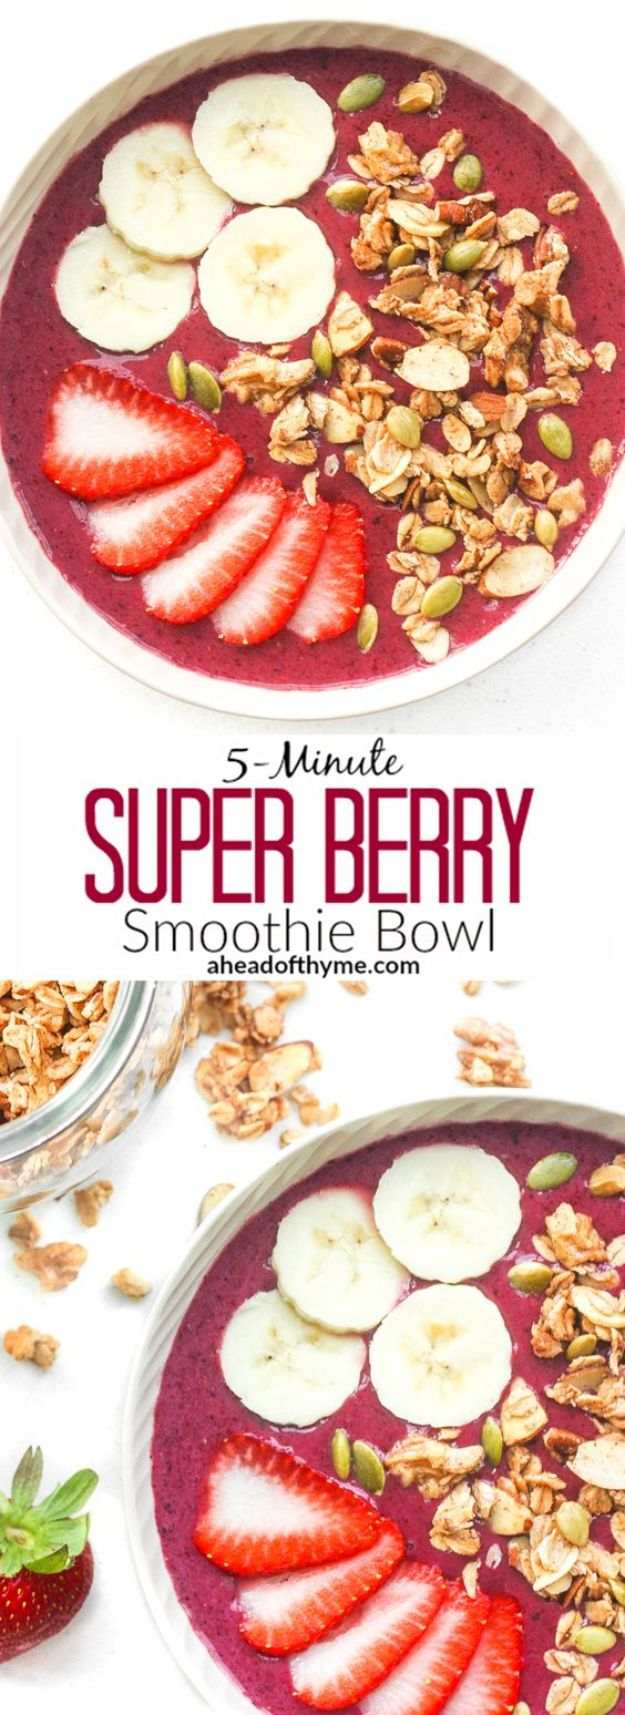 Quick Dessert Recipes - 5-Minute Super Berry Smoothie Bowl Recipe - Fast Desserts to Make In Minutes - Sweet Treats, Cookies, Cake and Snack Ideas